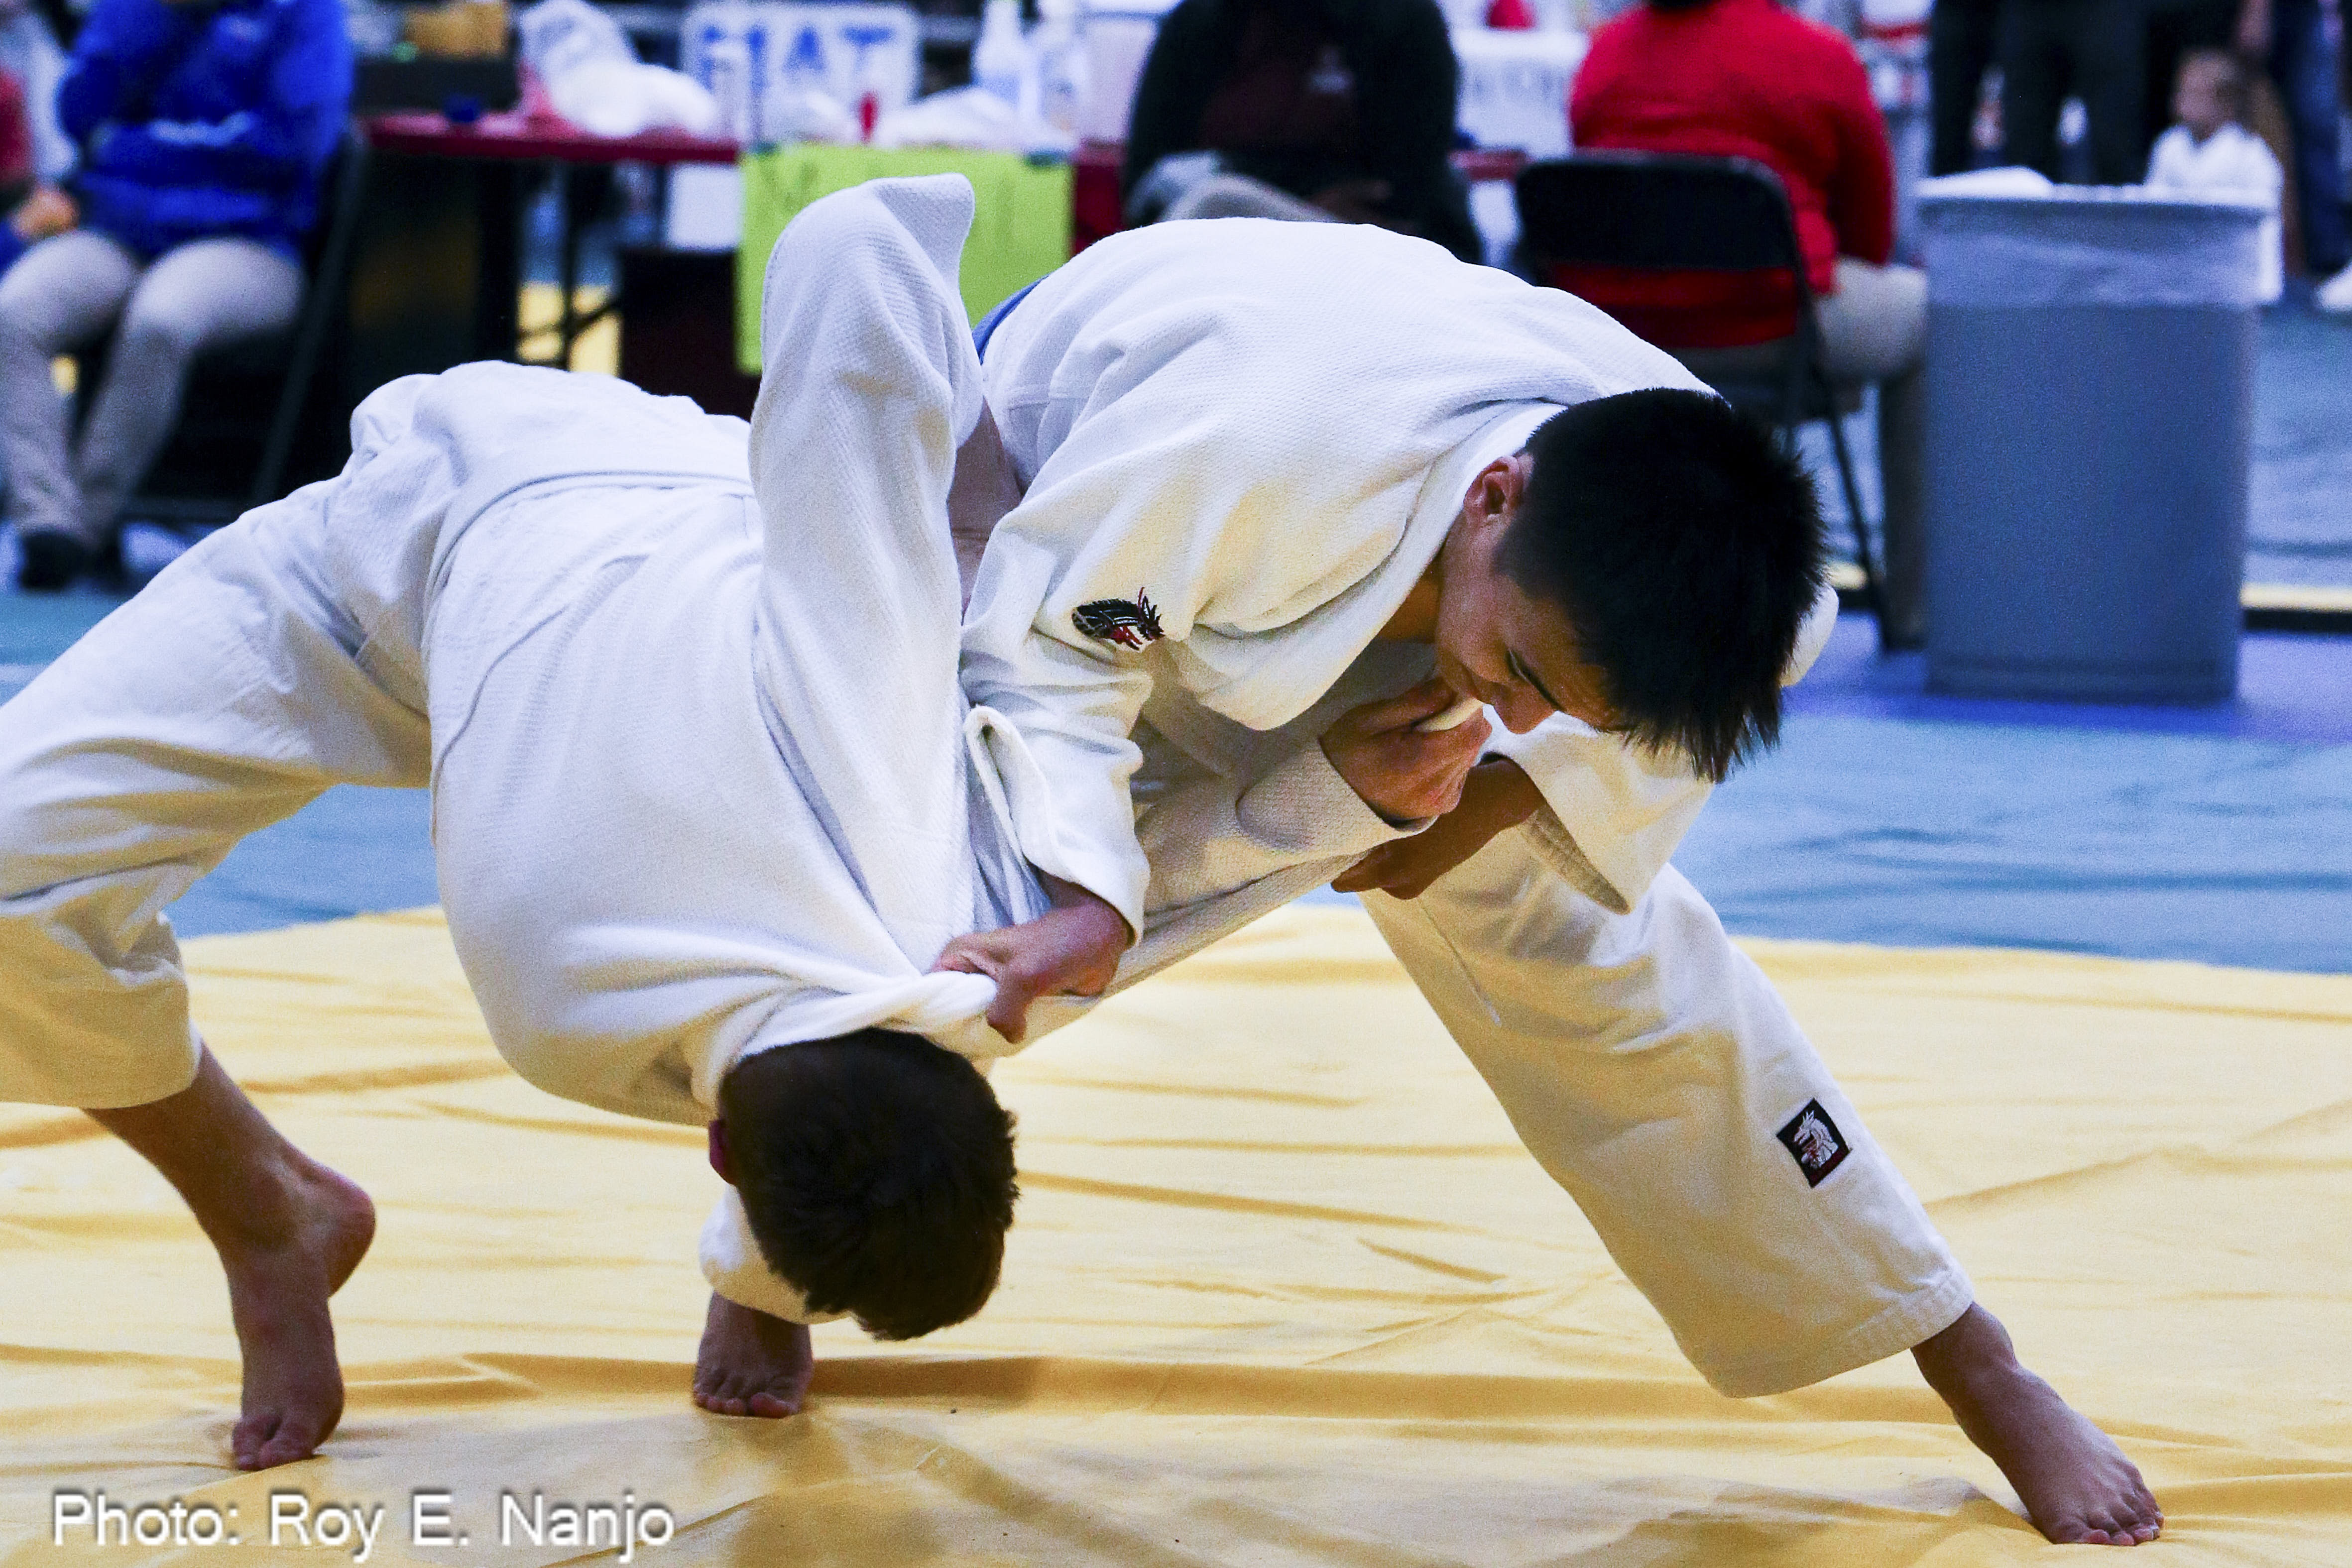 2019 Shufu Open Championships Celebrates Its Legends and Results